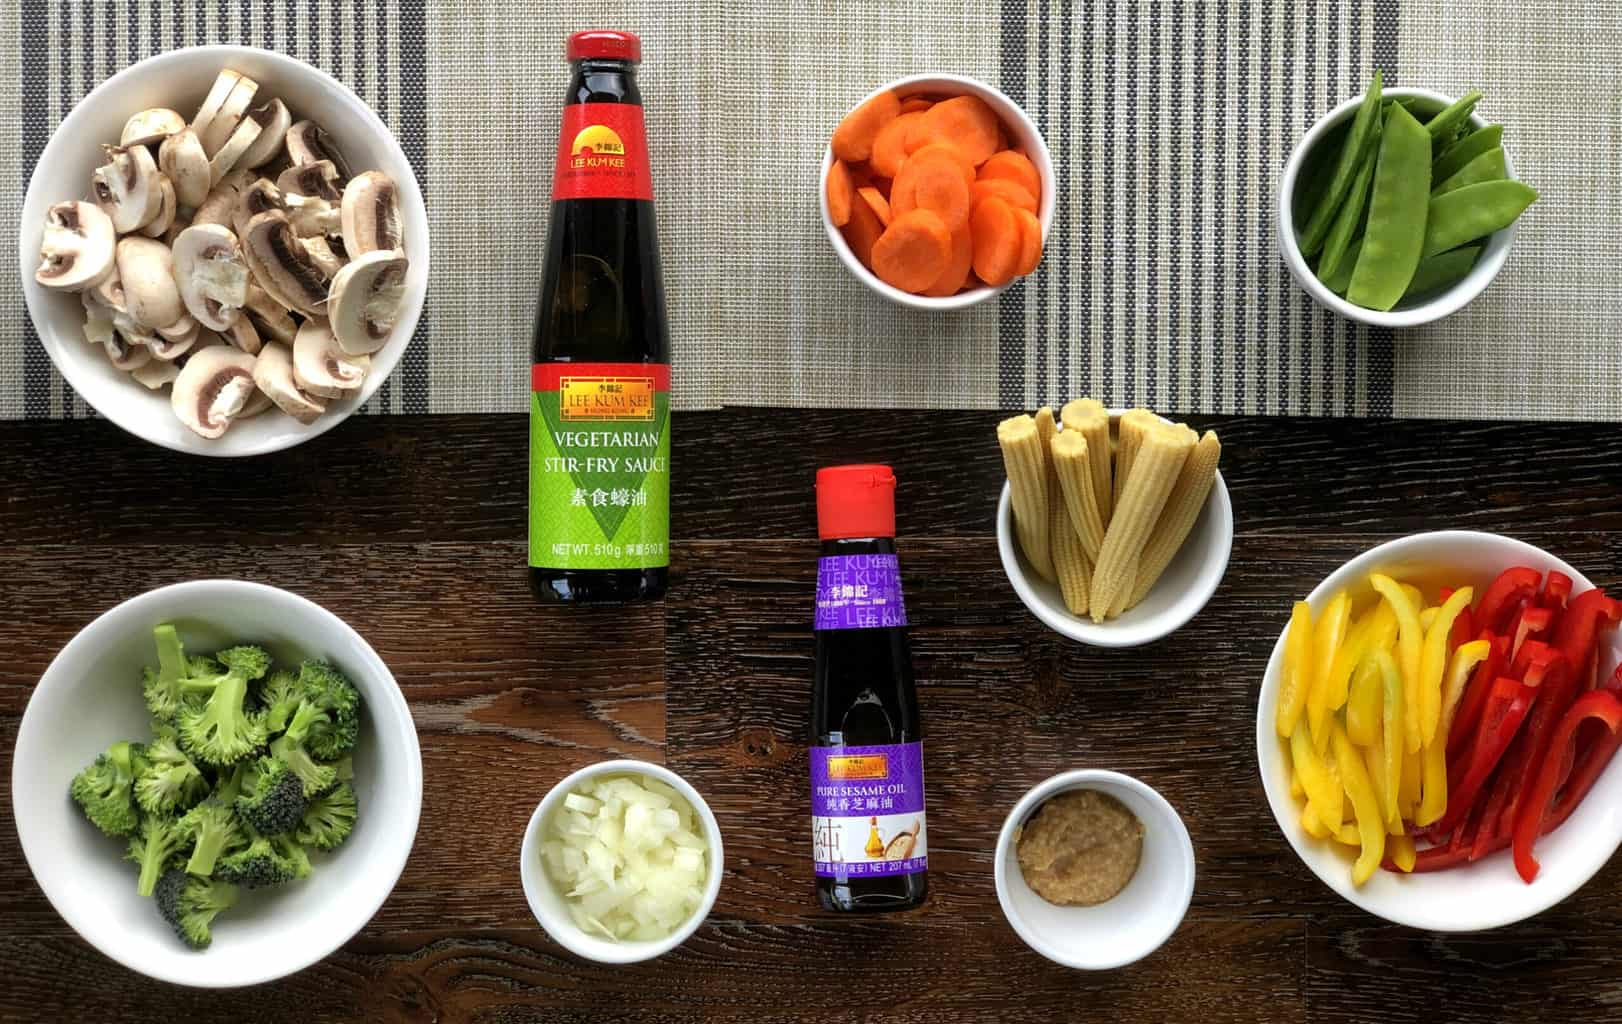 Flatlay of prepared vegetables for Vegetarian Stir Fry, mushrooms, broccoli, onion, garlic, baby corn, carrots, snow peas capsicum and two Lee Kum Kee sauces